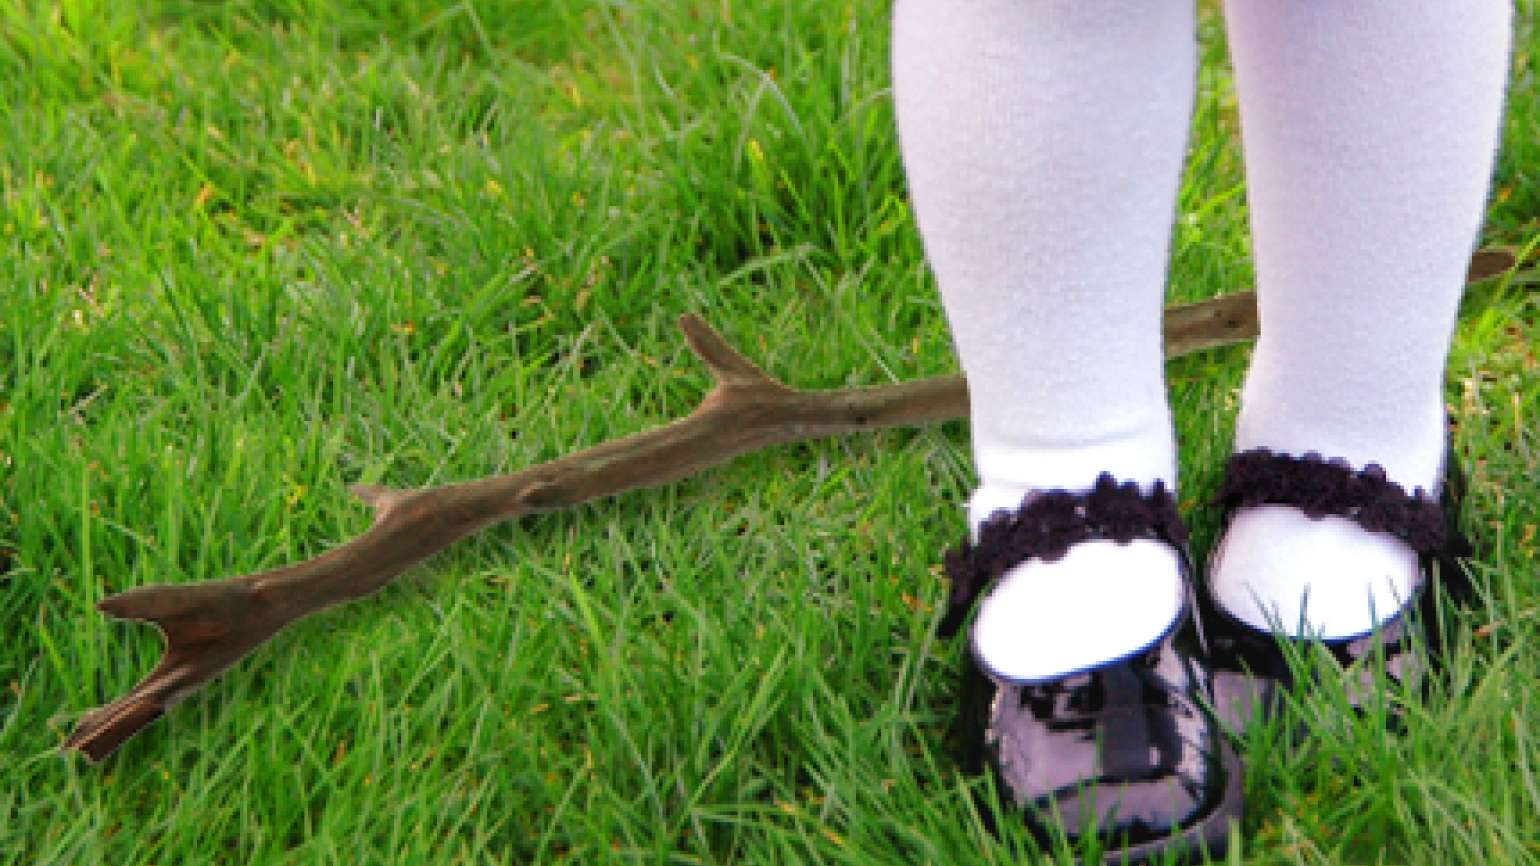 A closeup of a young girl's feet, with a dropped stick lying in the grass